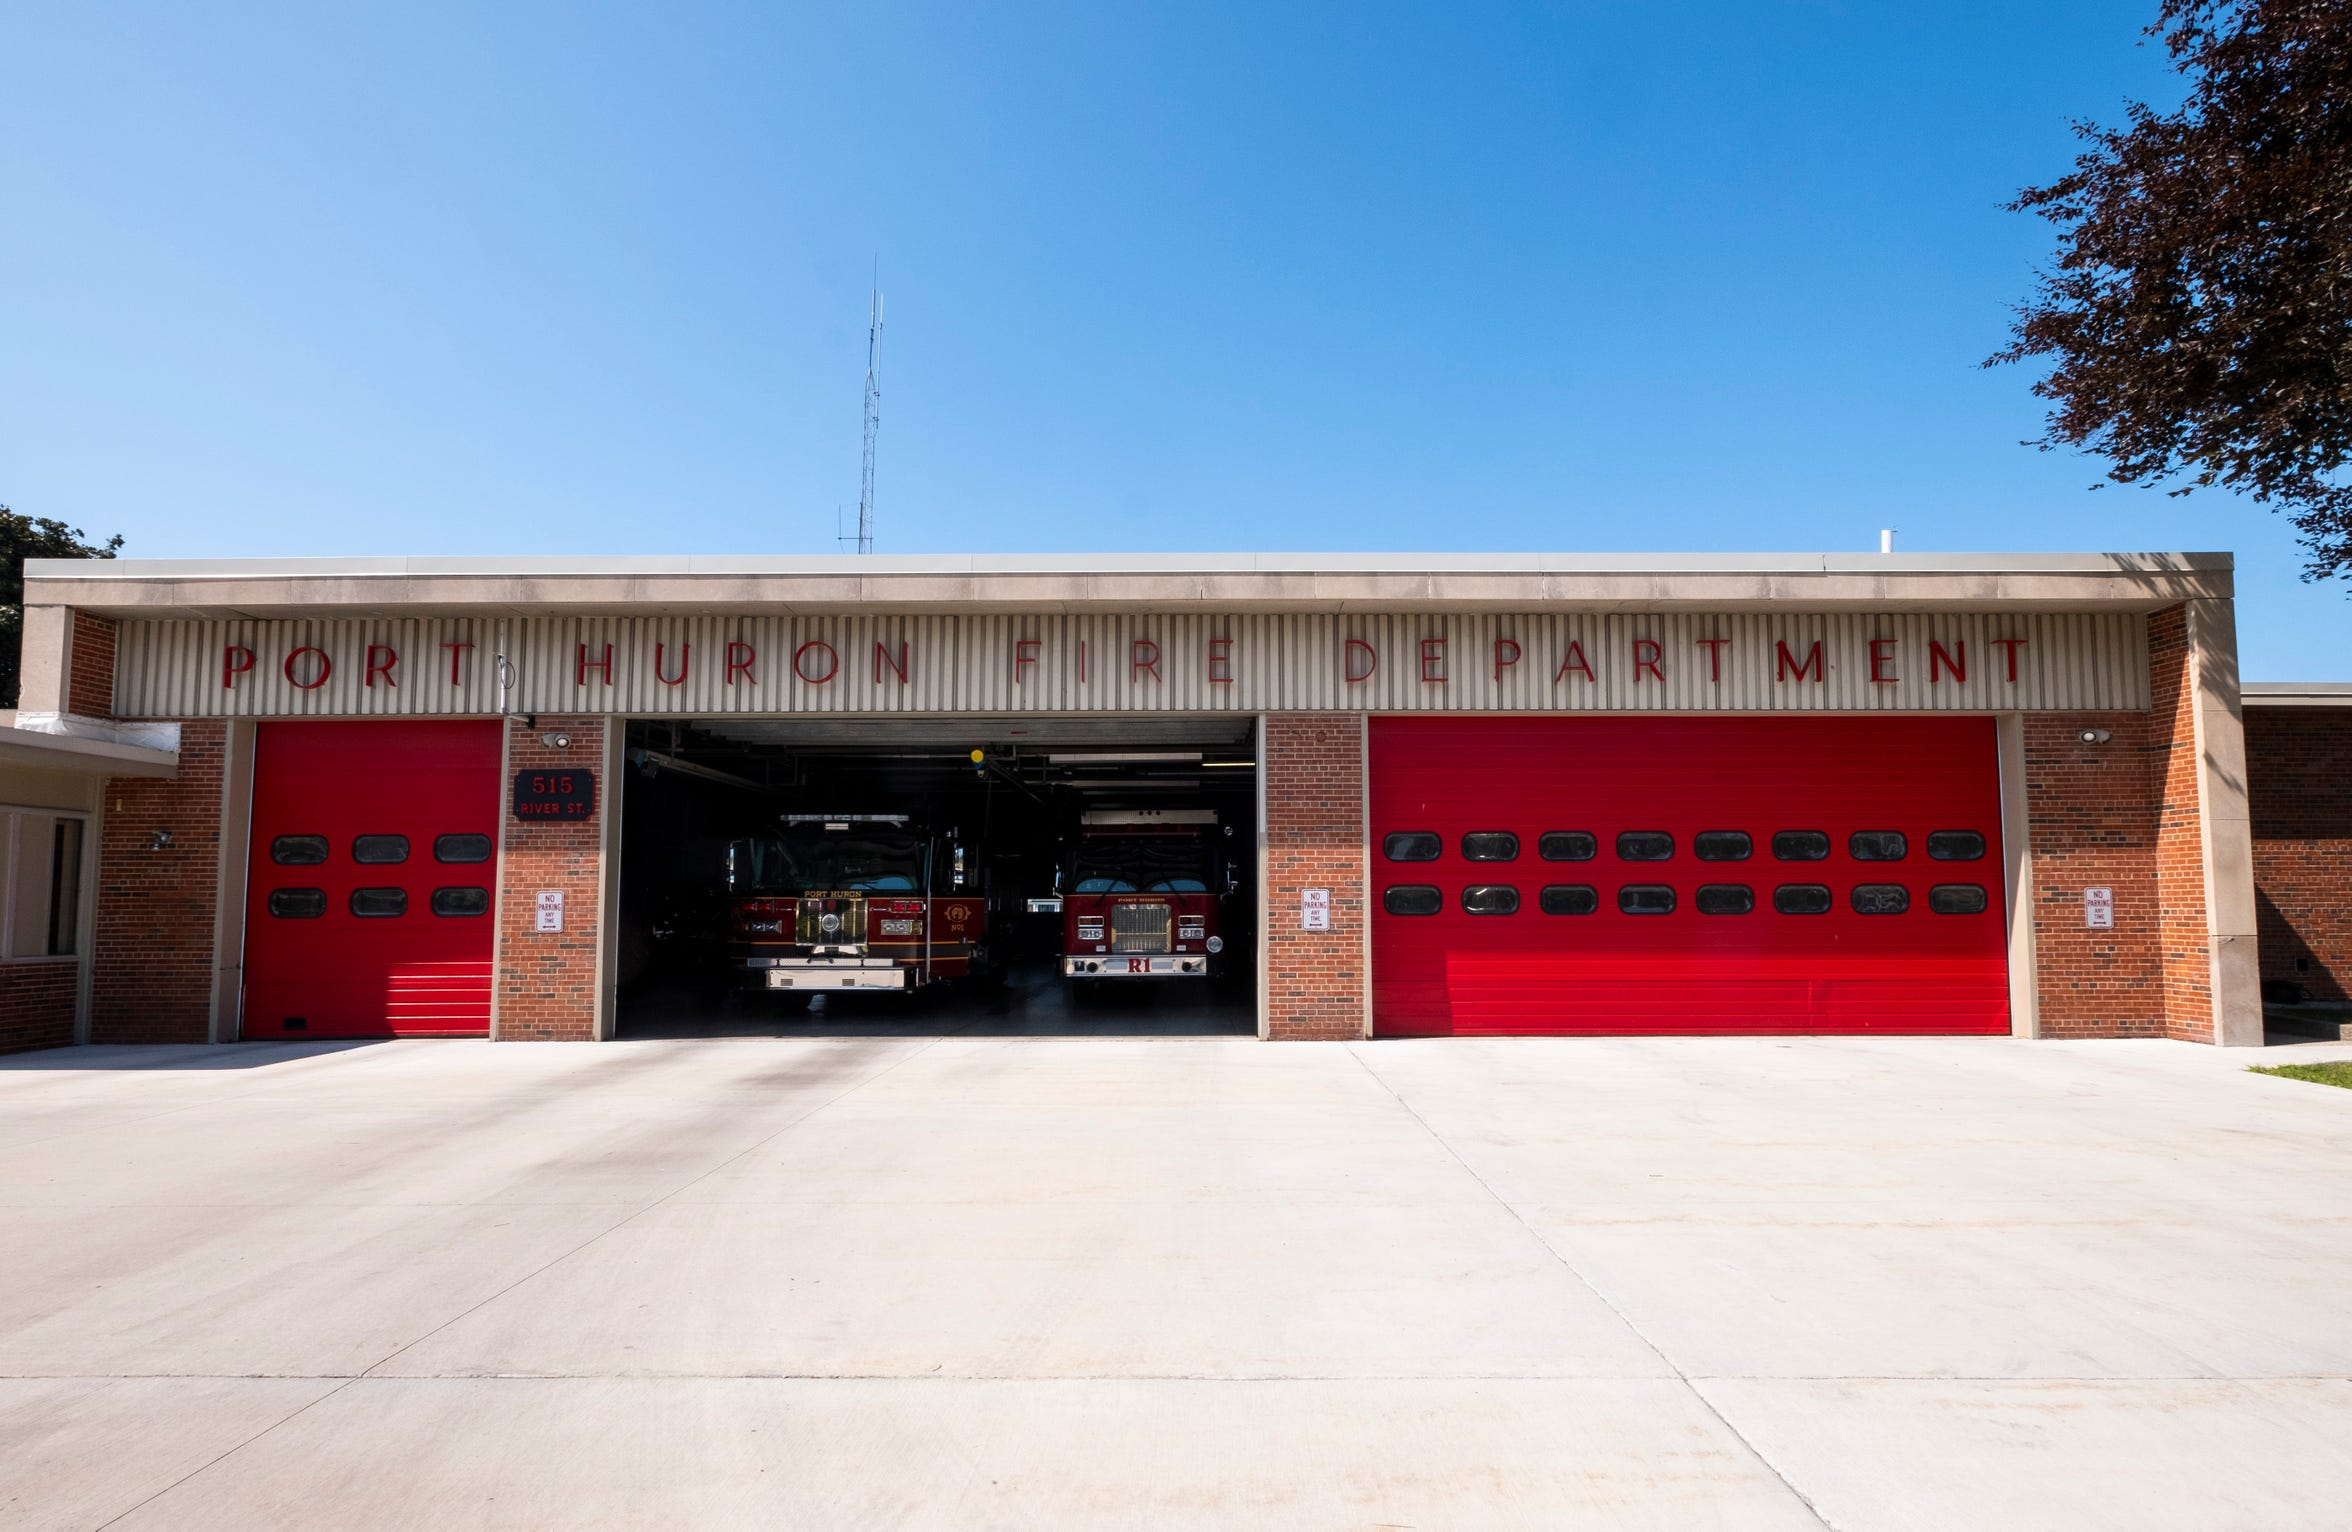 The Port Huron Fire Department's Central Station was built in 1960 and needs updating to meet fire industry standards. The city needs help to decide if it's worth saving or if they should close it to build a new one.